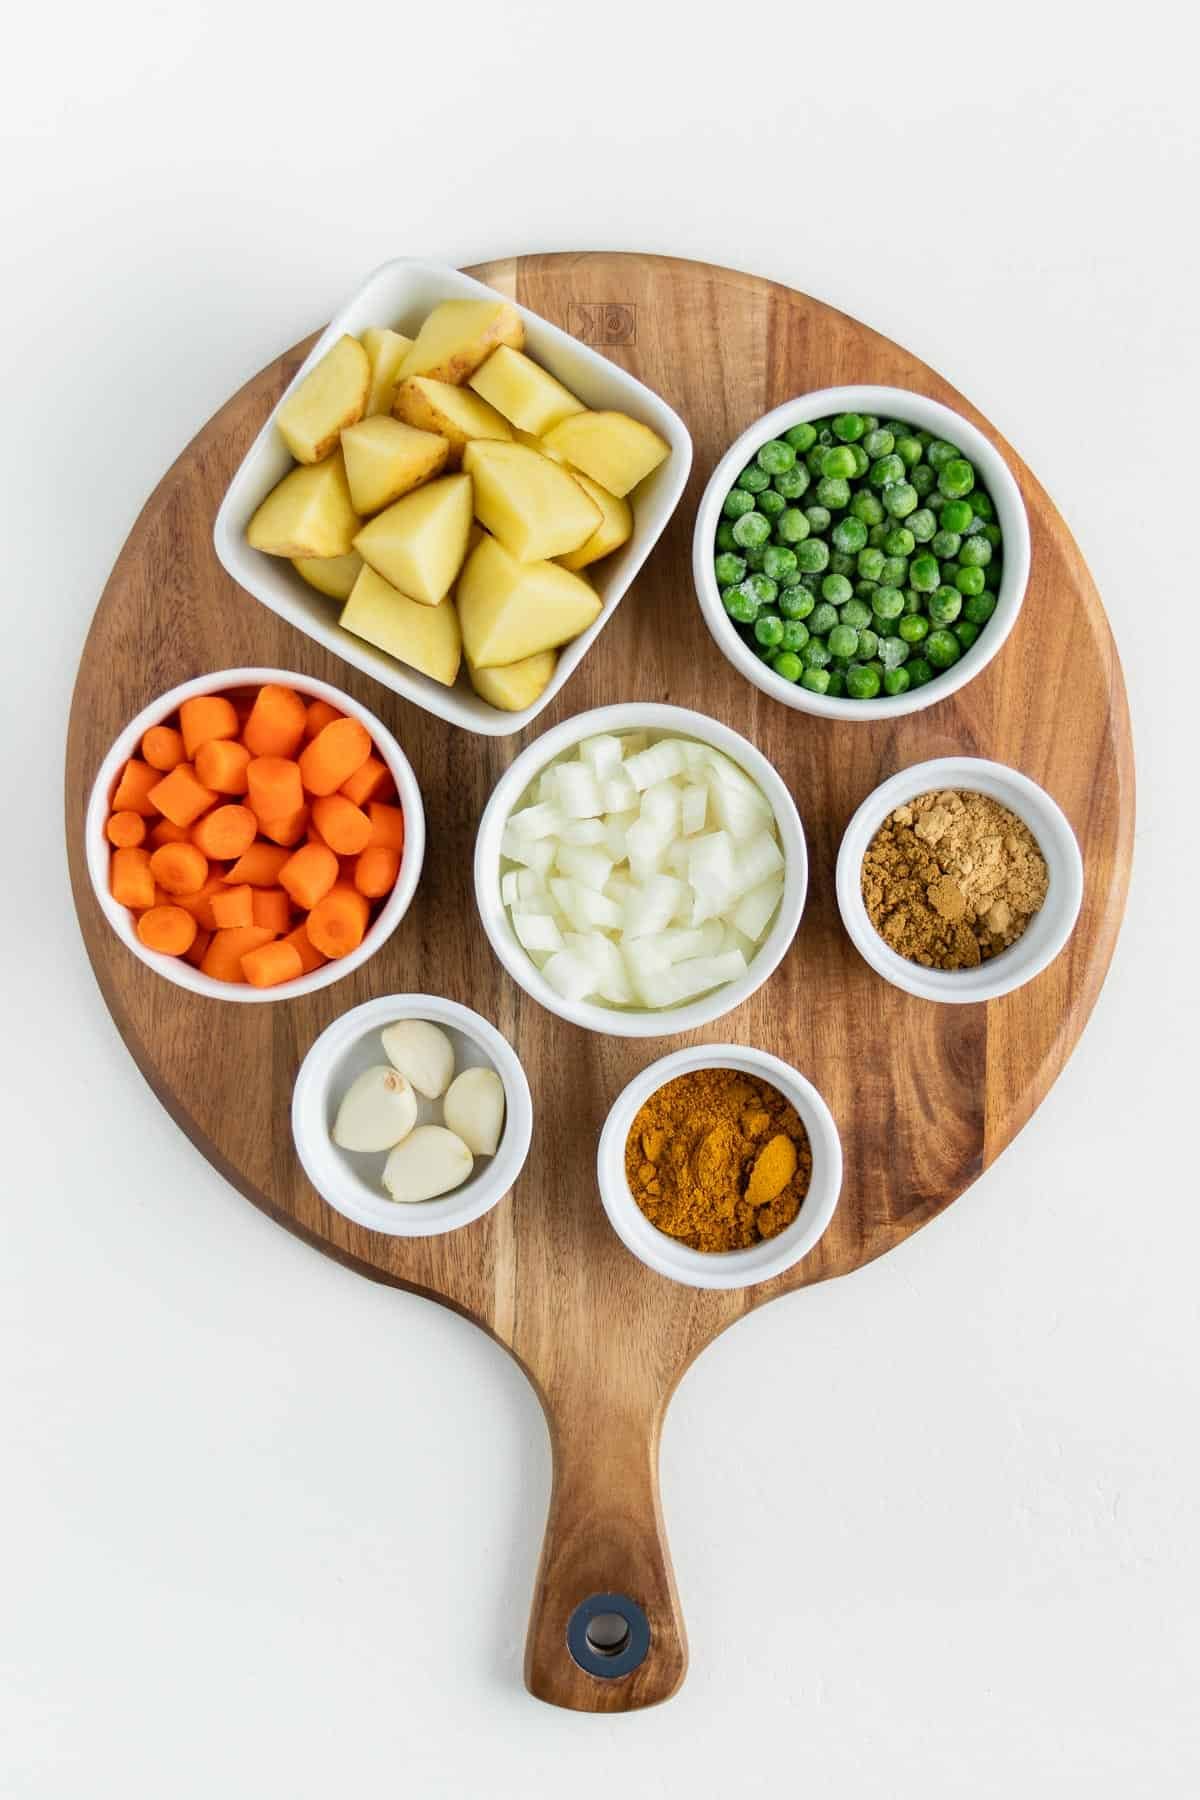 small white bowls filled with potatoes, green peas, carrots, onion, garlic, and spices on a round wooden board